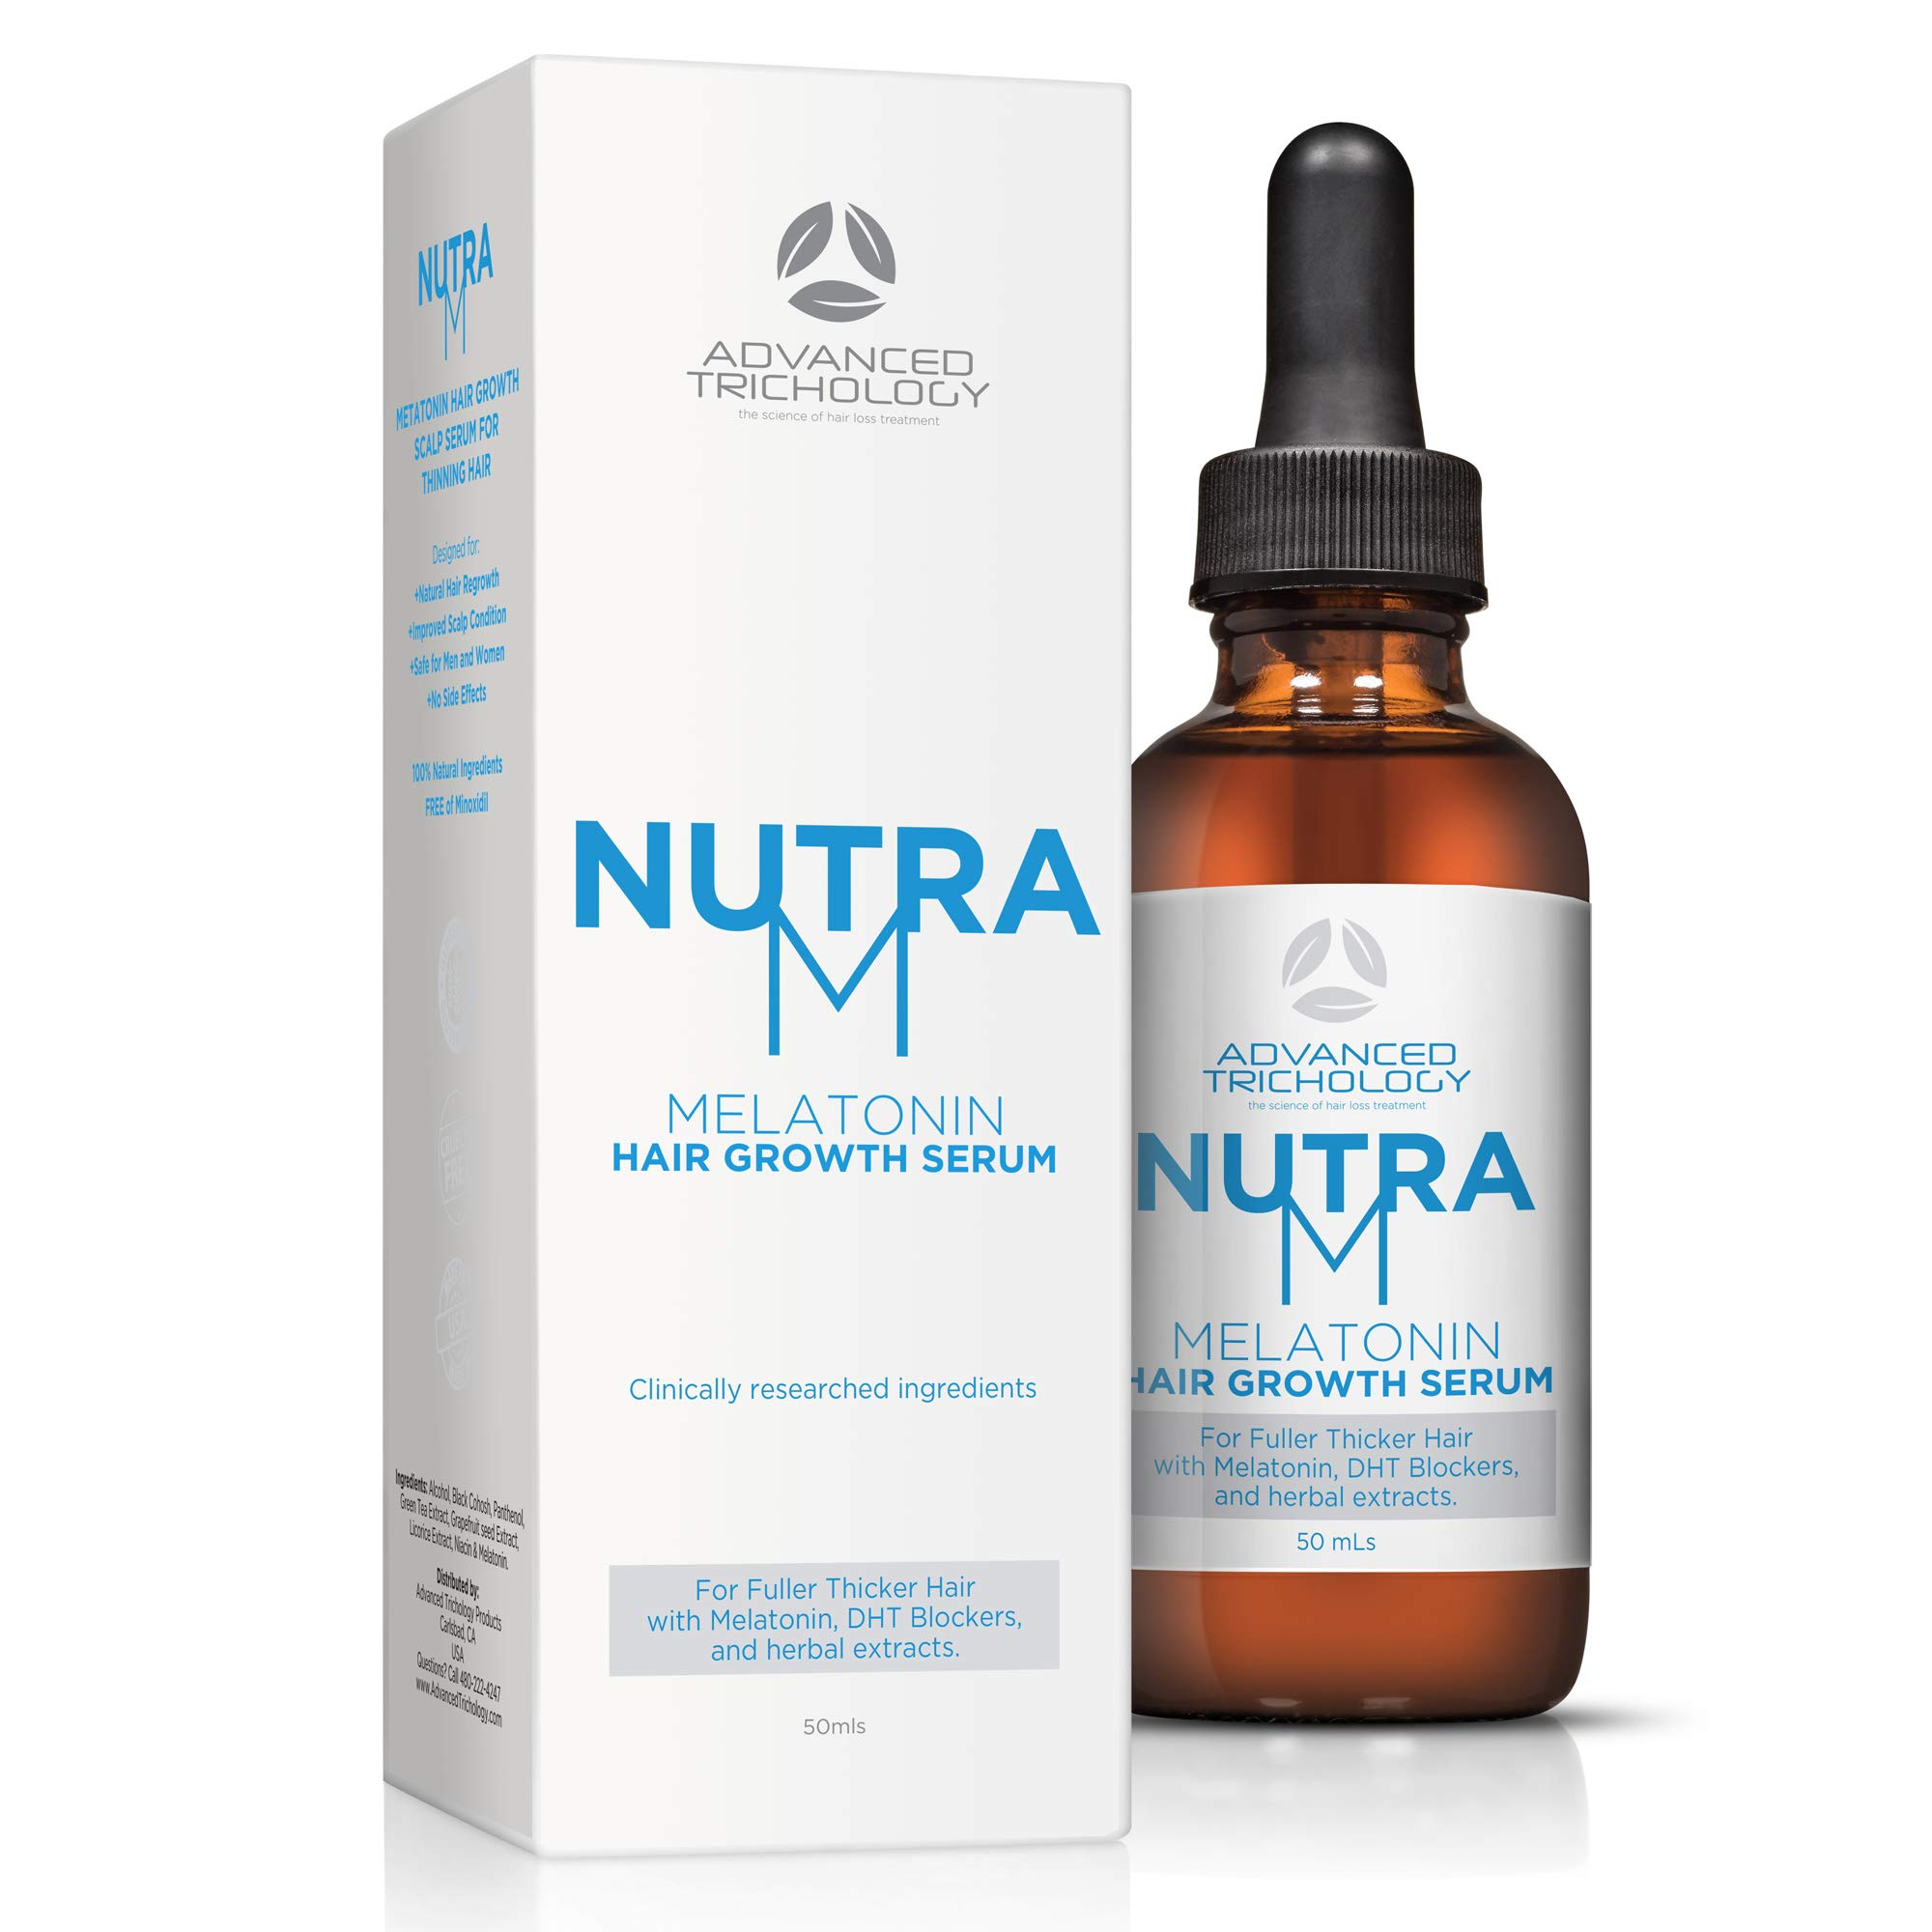 NutraM Melatonin Clinical Hair Growth Serum - DHT Blocker Hair Loss Treatments, Reverse Thinning Hair with Melatonin, and Hair Growth for Men and Women - Guaranteed - Residue Free by Advanced Trichology